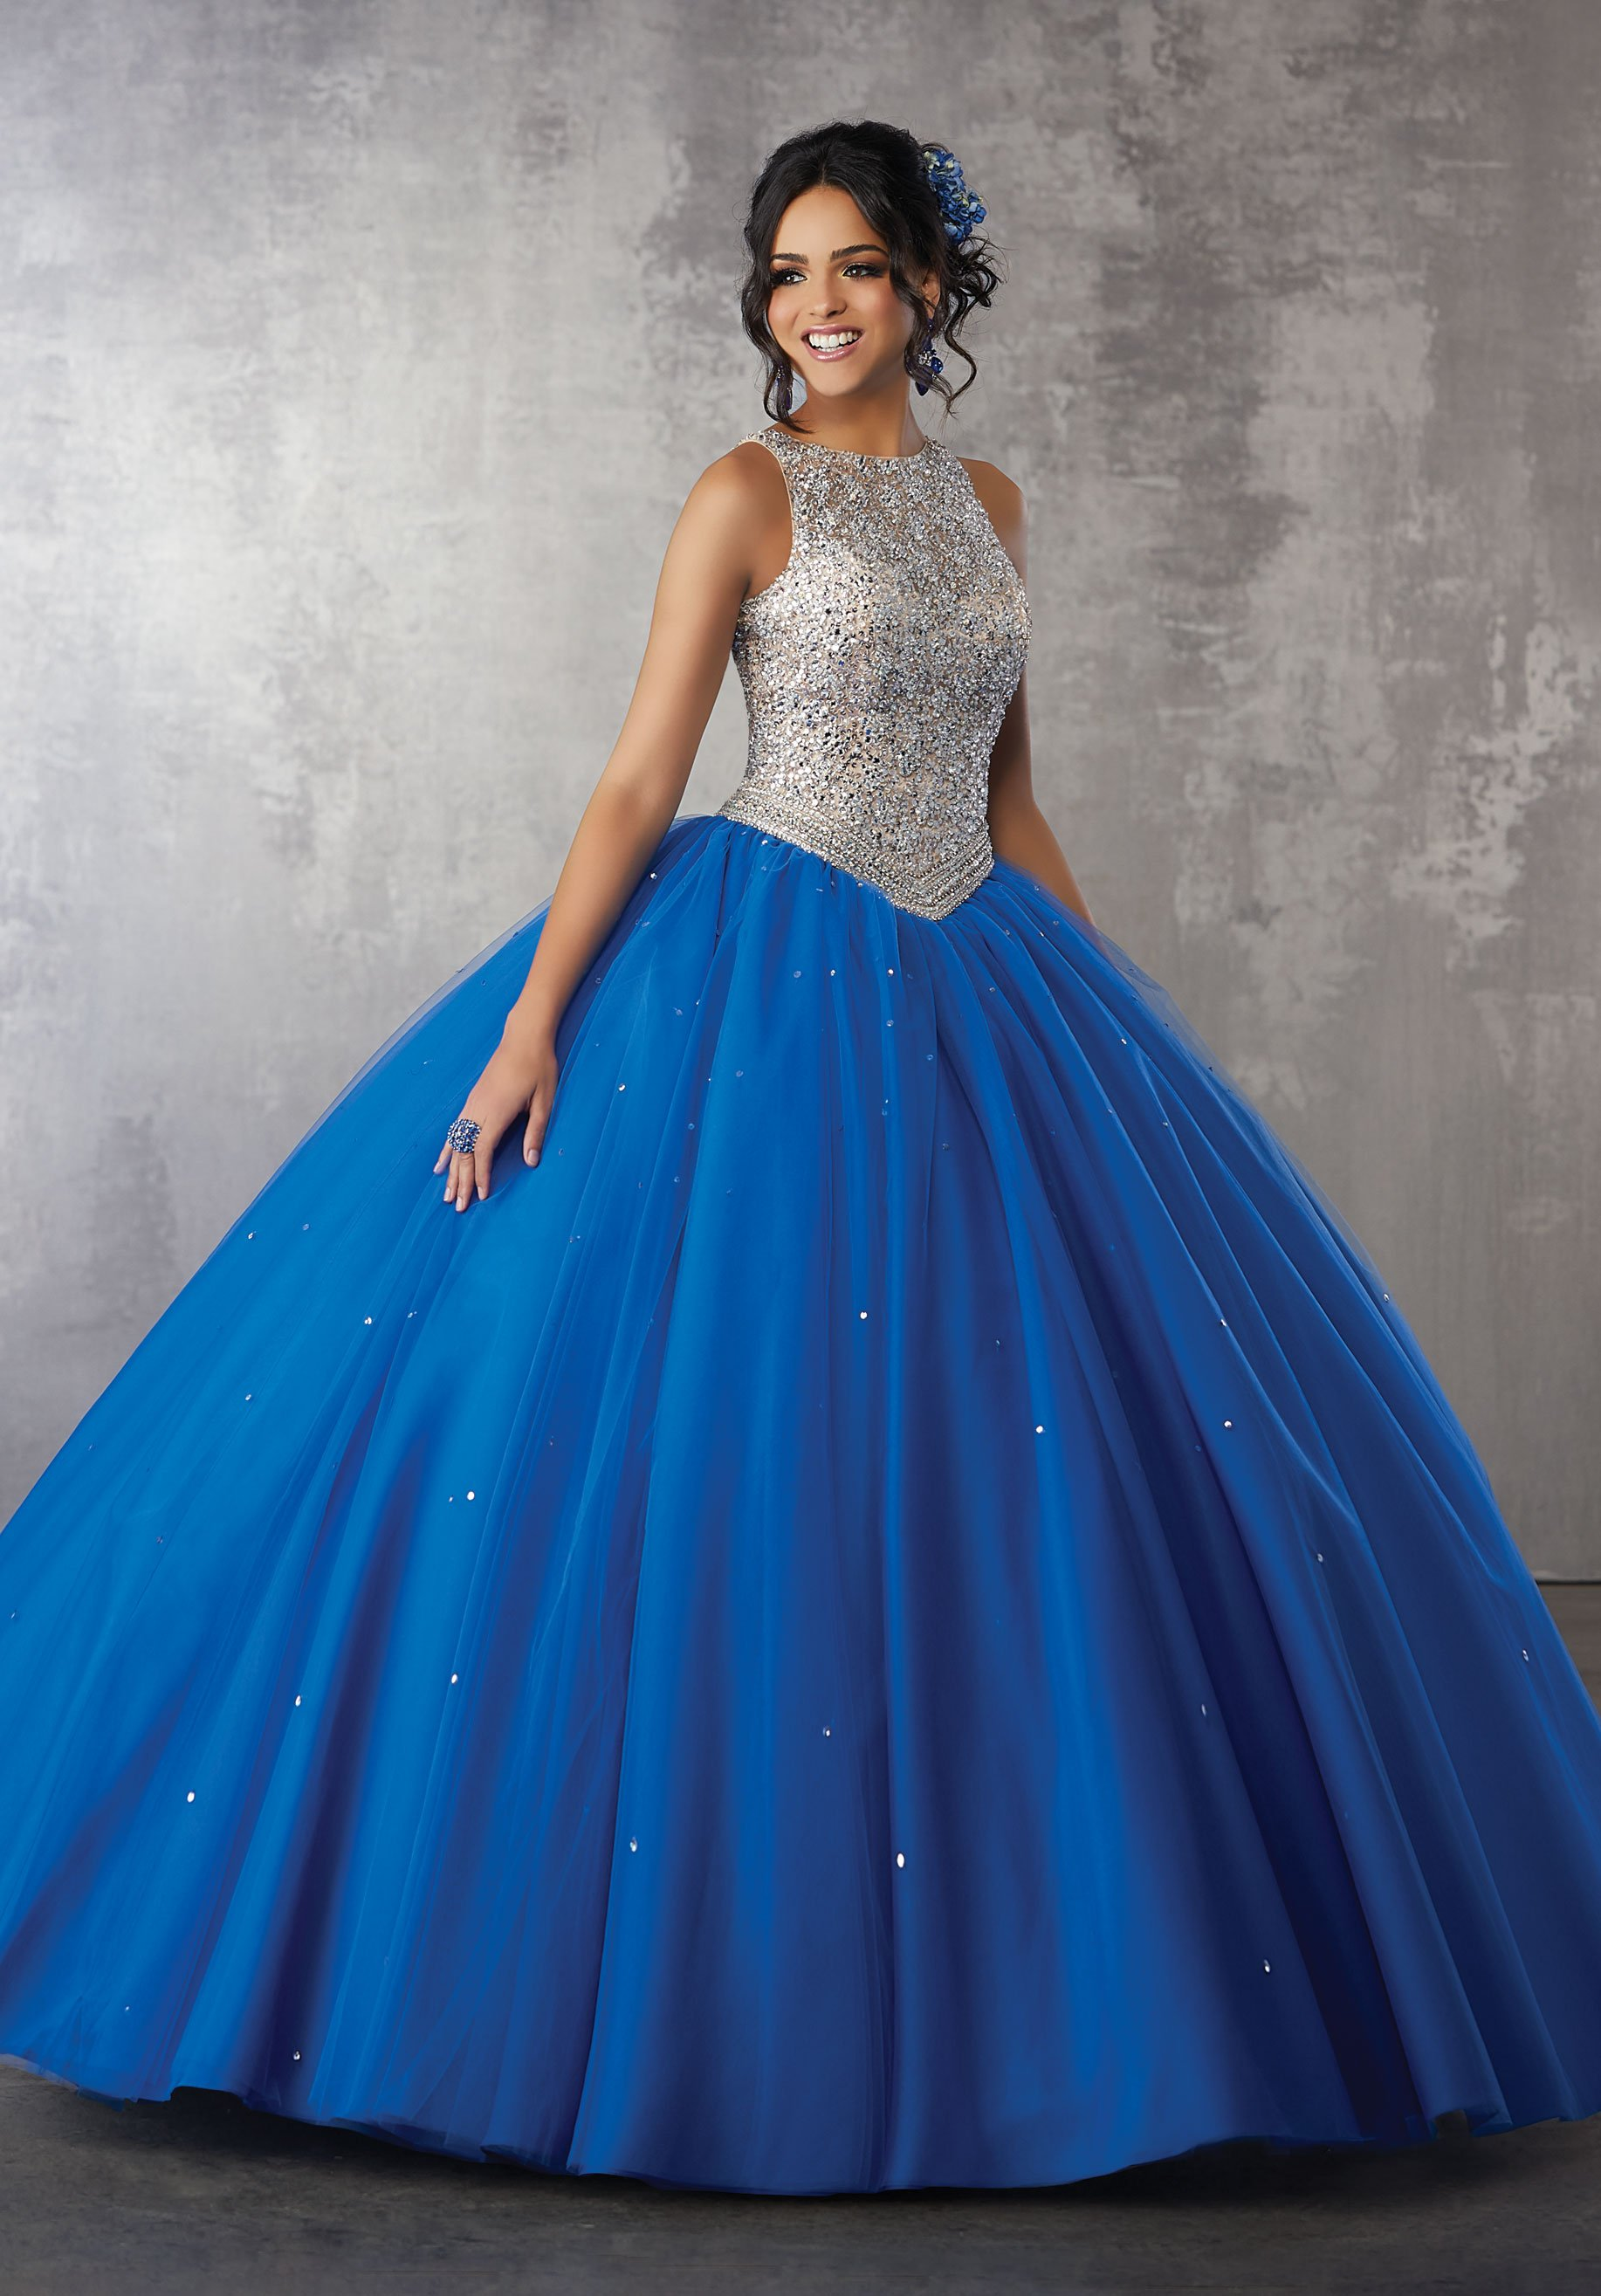 f9e5adfa4d9 Beaded Tulle Quinceanera Dress by Mori Lee Valencia 60040. Beaded Tulle  Quinceanera Dress by Mori Lee Valencia 60040 Vestido Azul Cielo